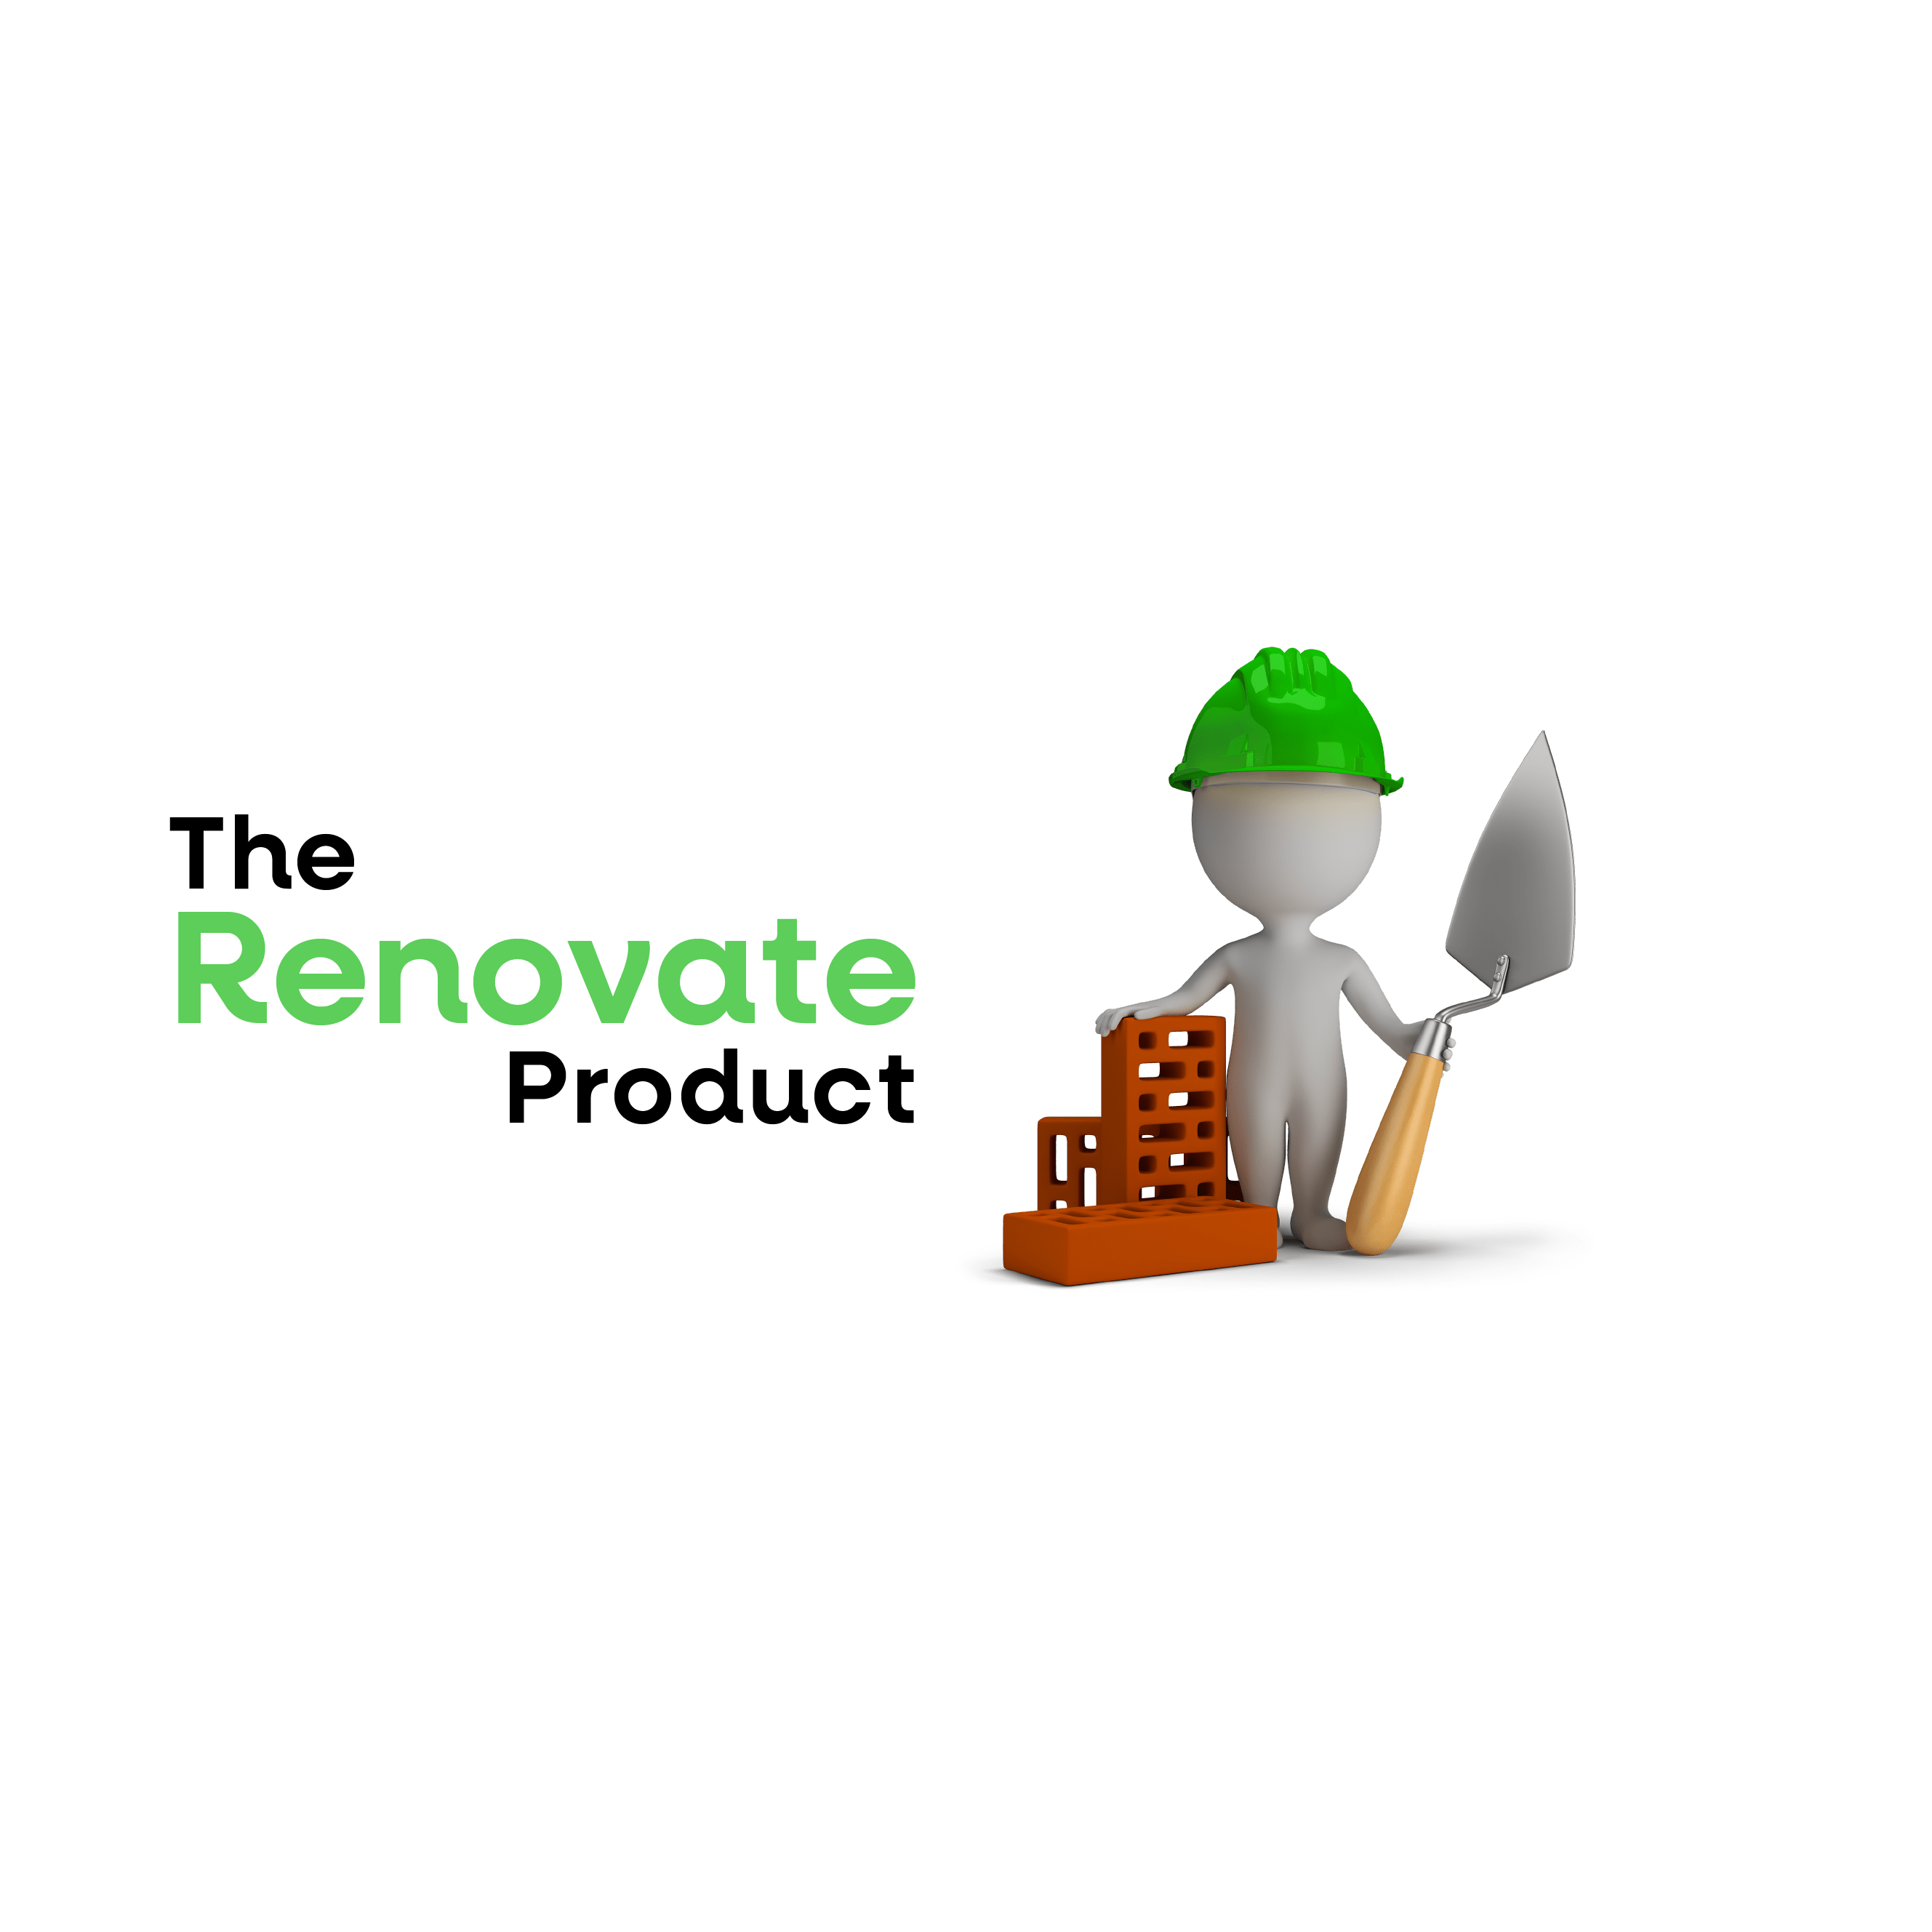 The Renovate Product